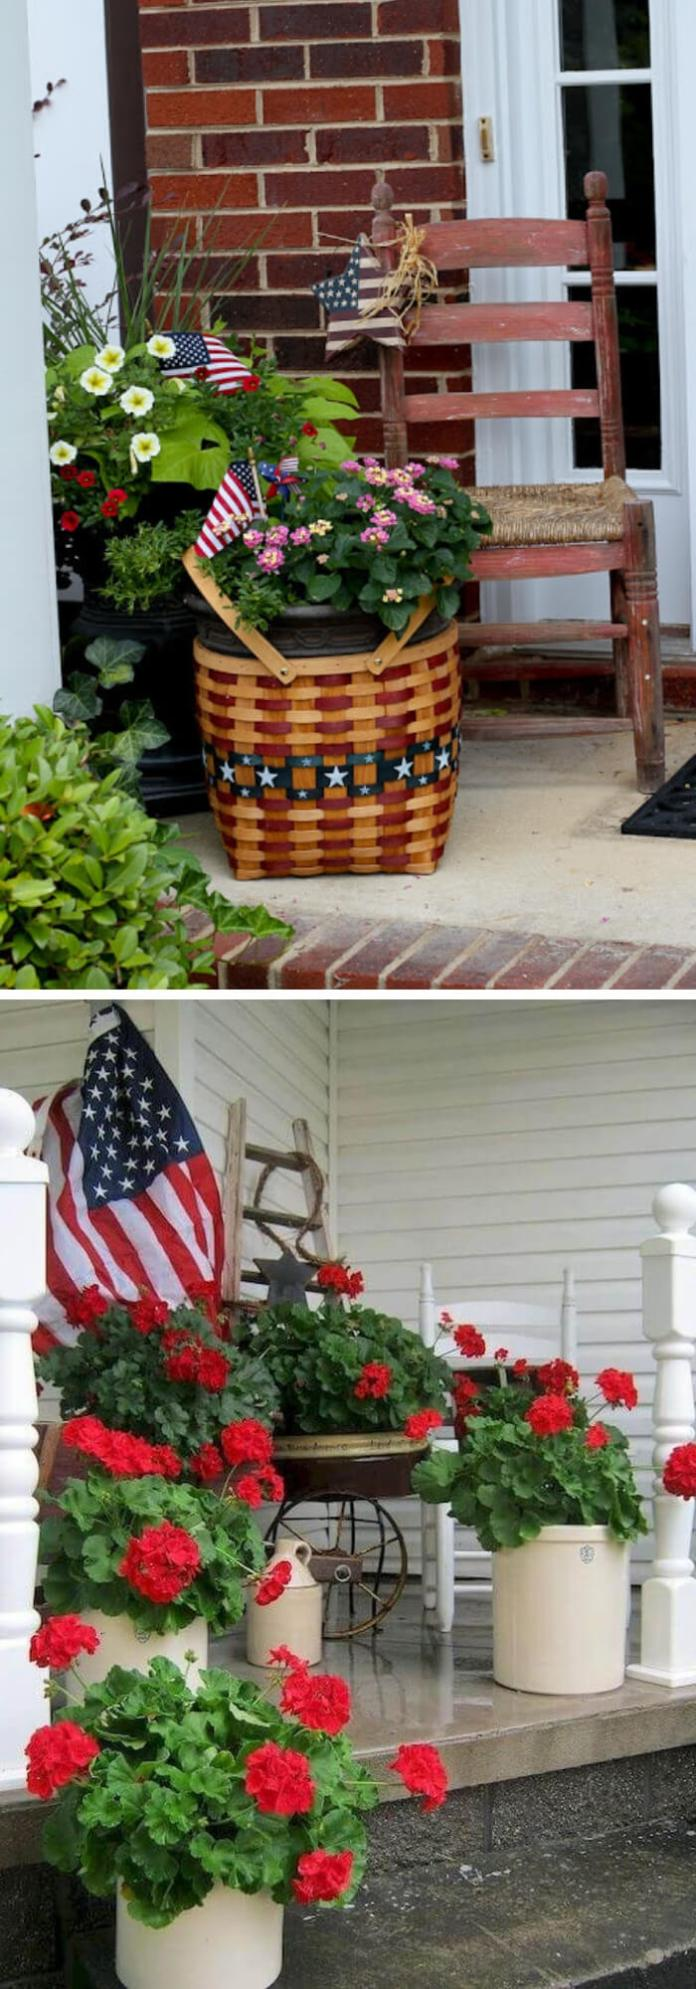 Patriotic basket with red verbena with white Bacopa